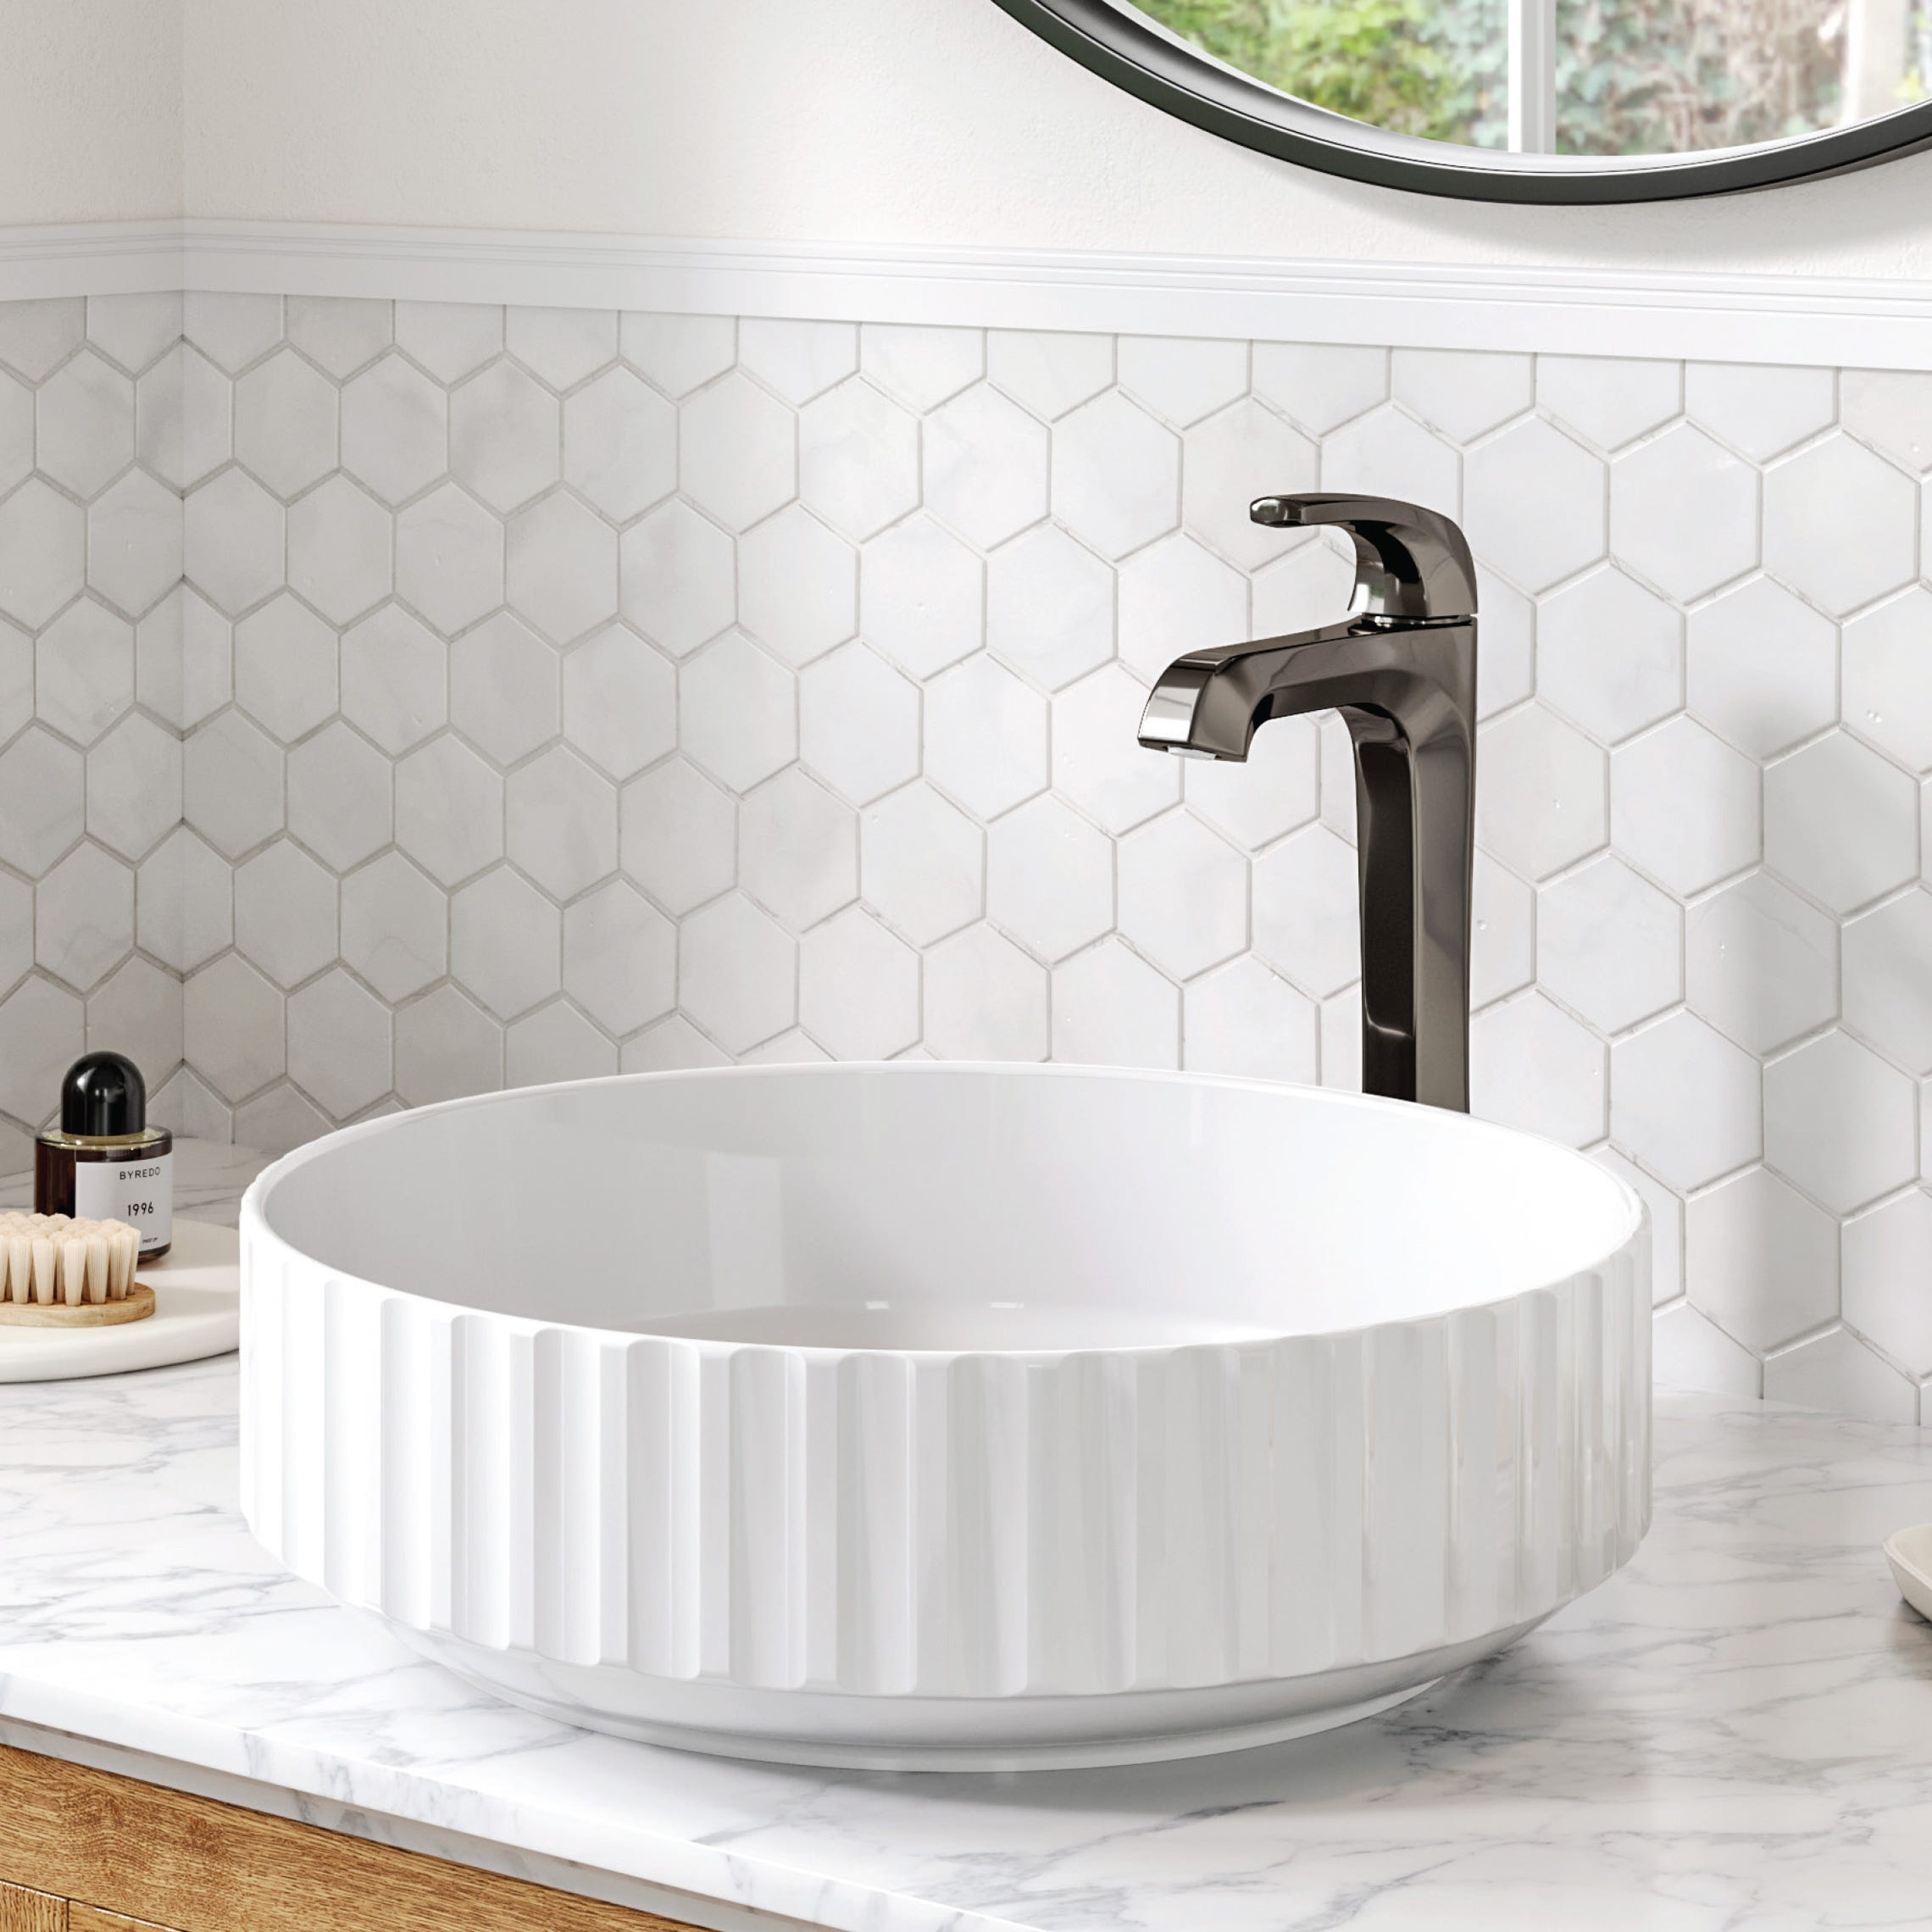 Picture of: Diy Installation Guide For Your Bathroom With A New Vessel Sink